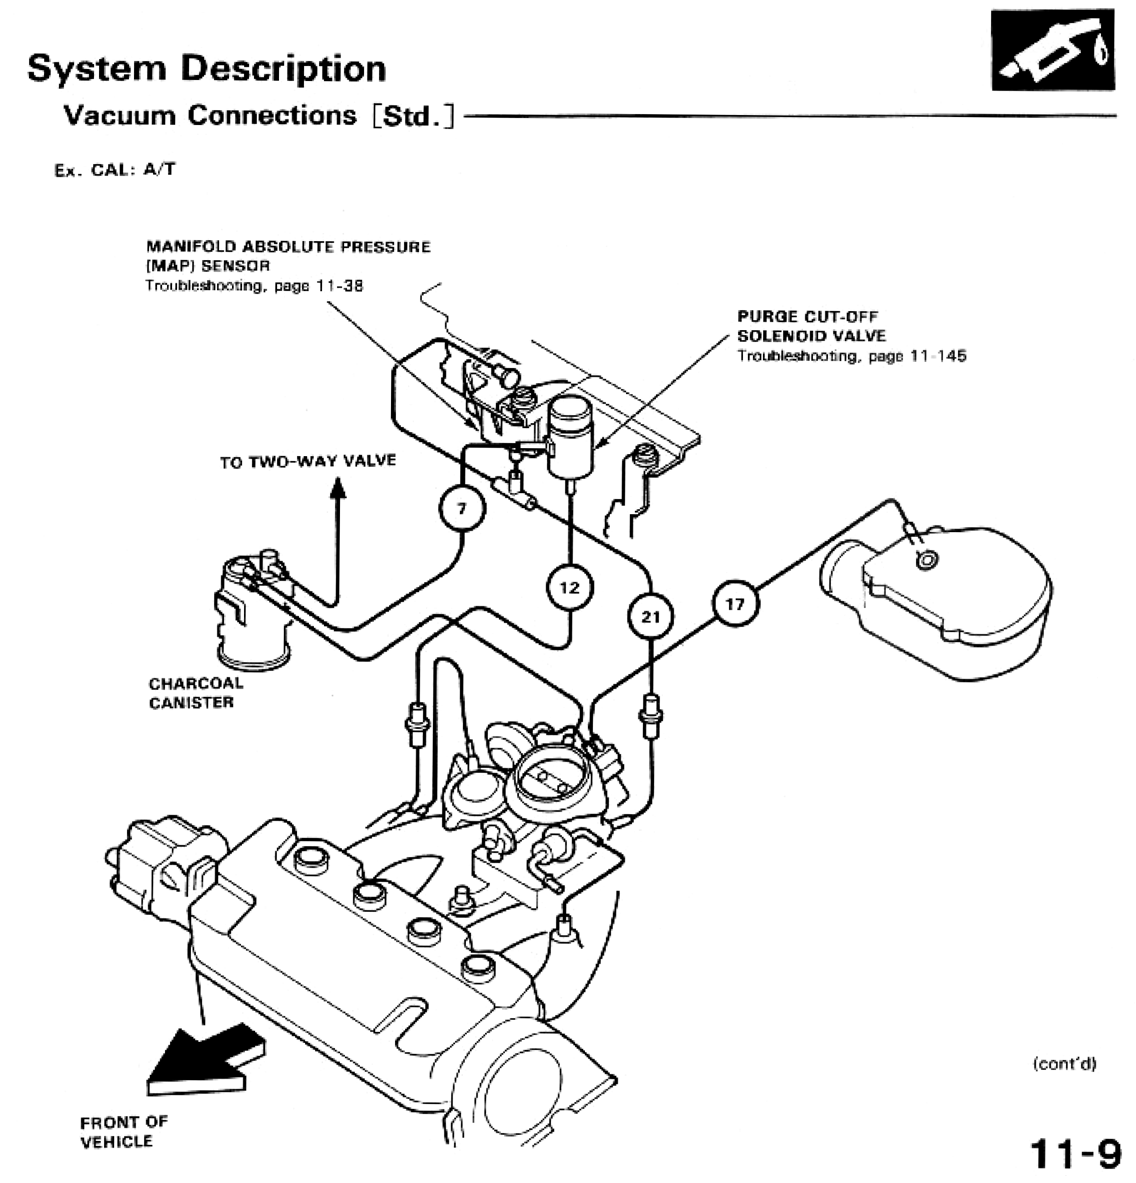 1998 Honda Civic Headlight Wiring Diagram